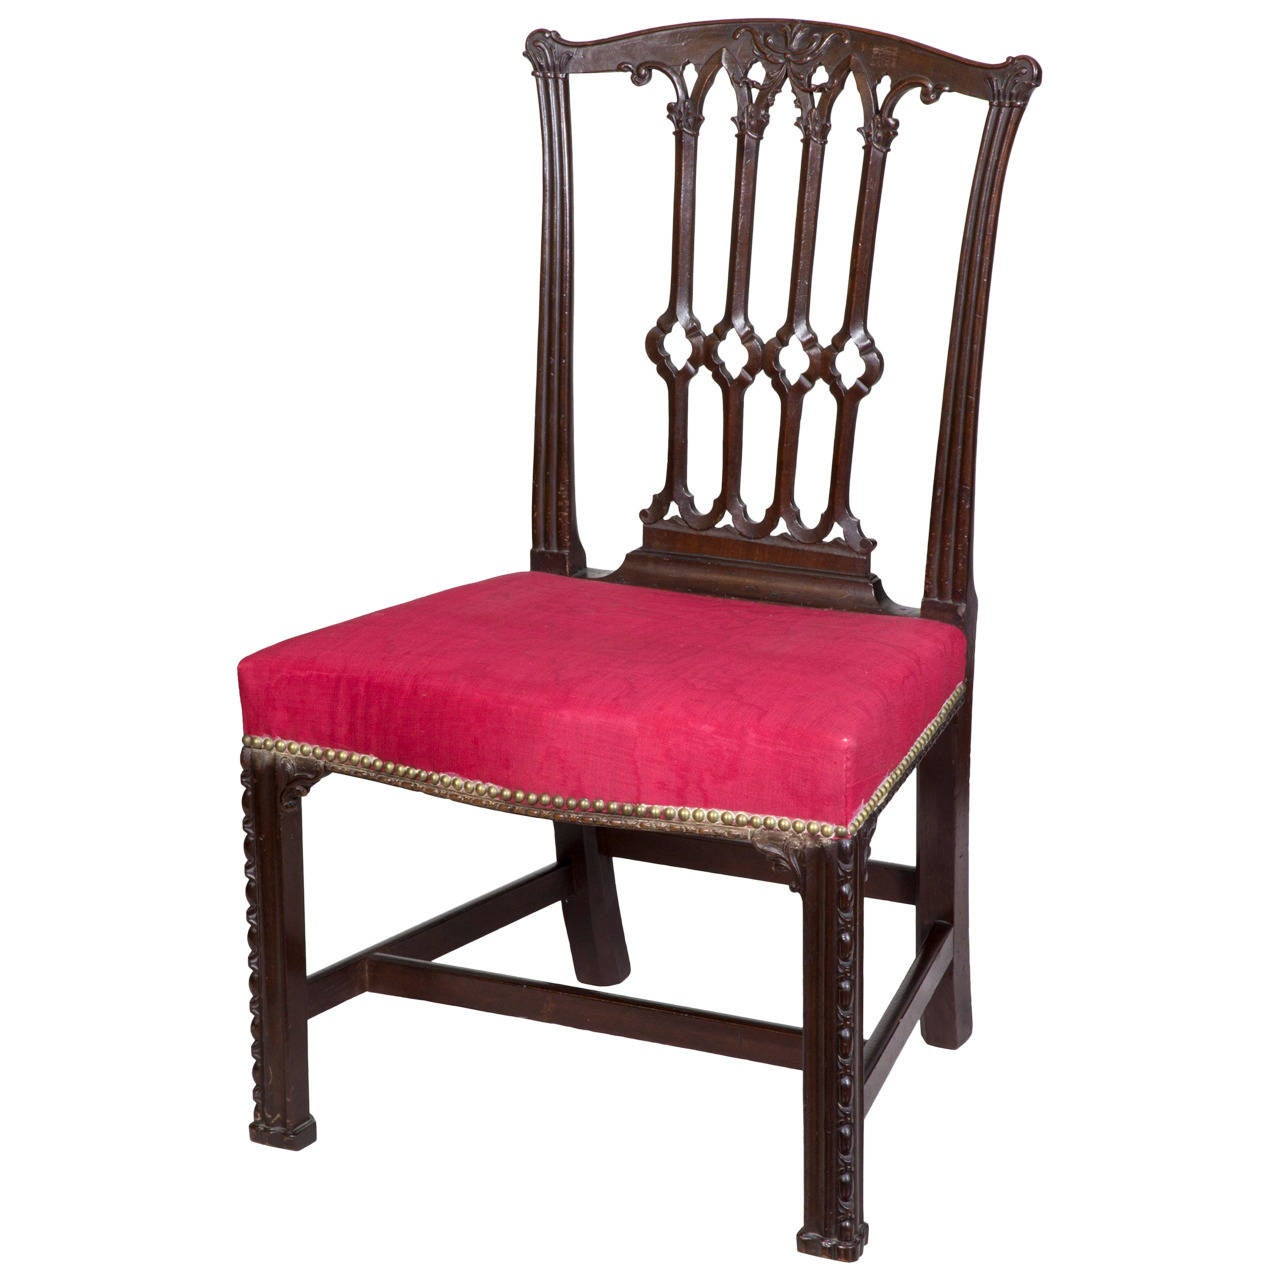 Chippendale Furniture: Exquisite Chippendale George II Mahogany Side Chair